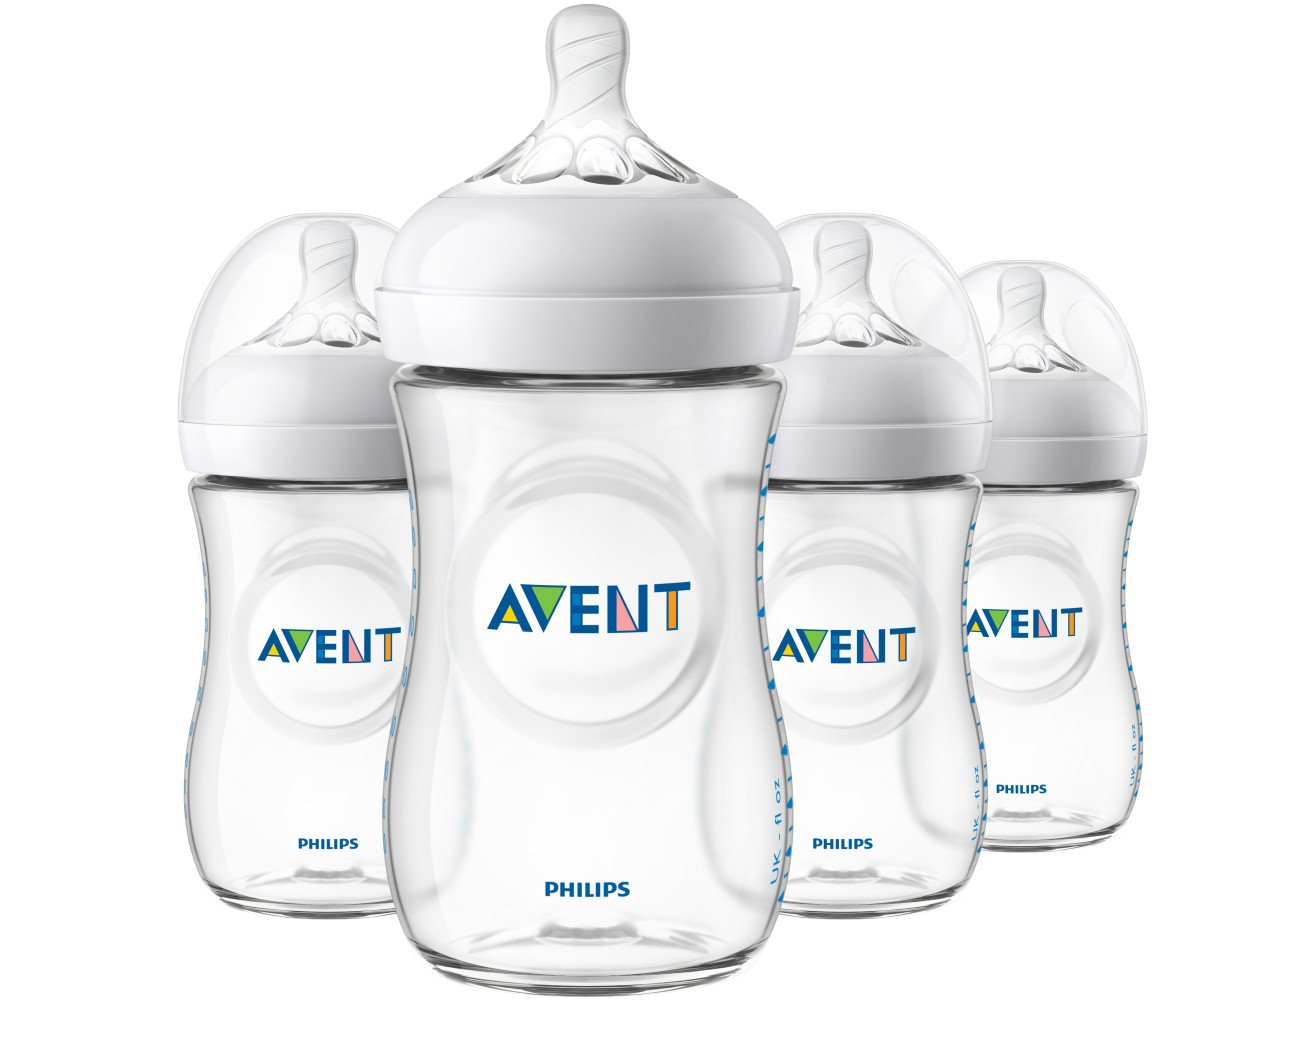 Philips Avent Natural Baby Bottle, Clear, 9oz, 4pk, SCF013/47 by Philips AVENT